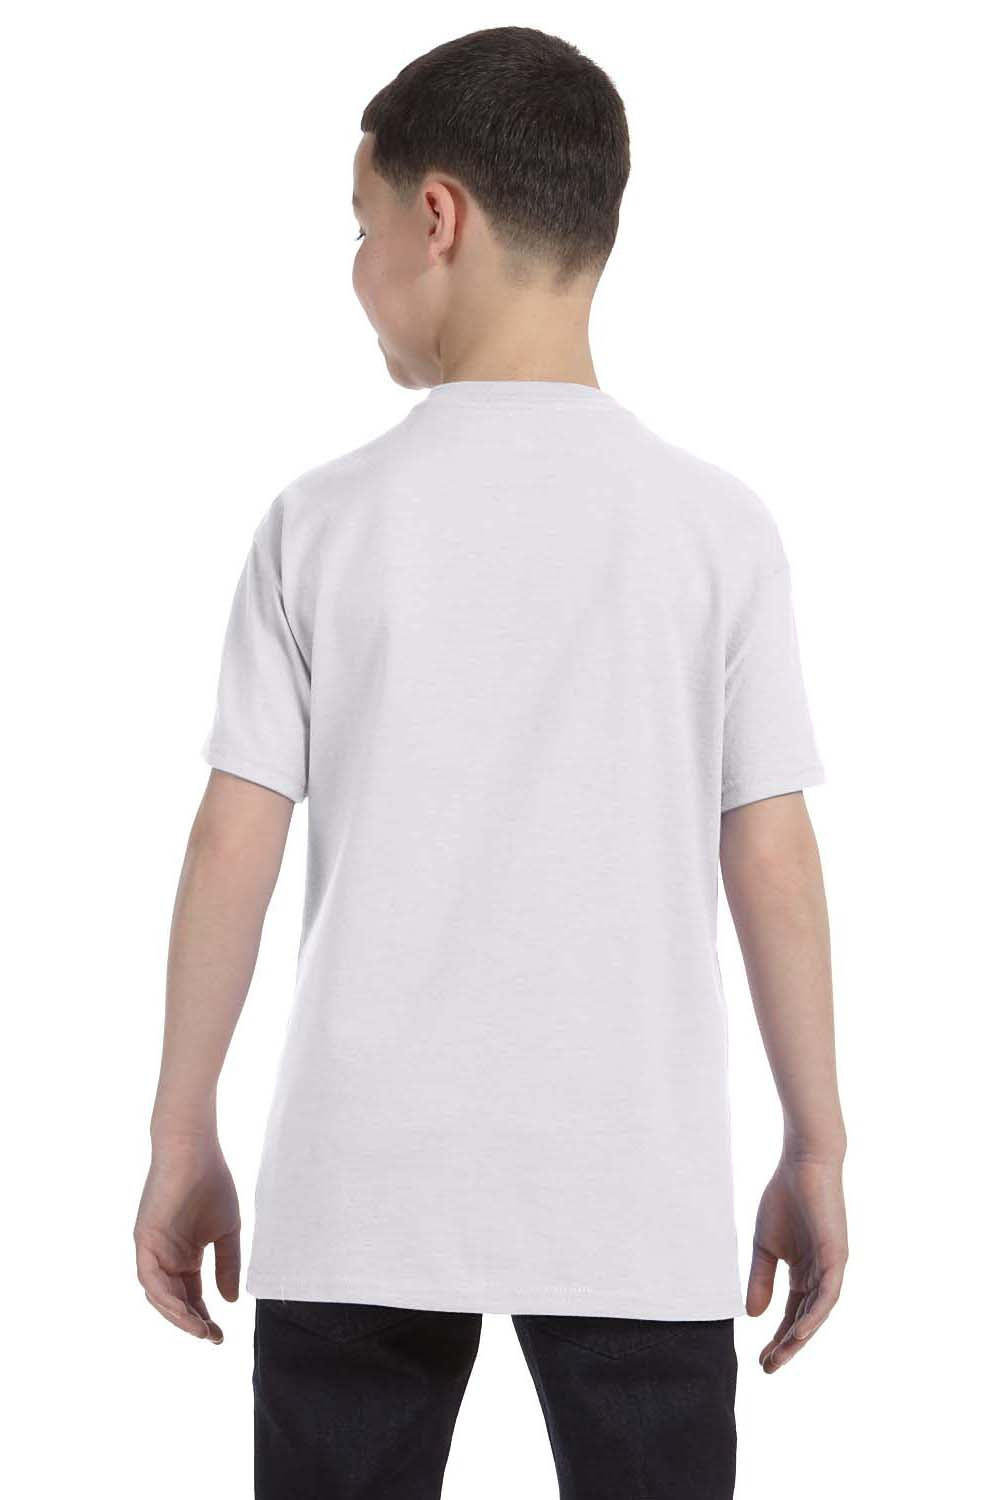 Hanes 54500 Youth ComfortSoft Short Sleeve Crewneck T-Shirt Ash Grey Back